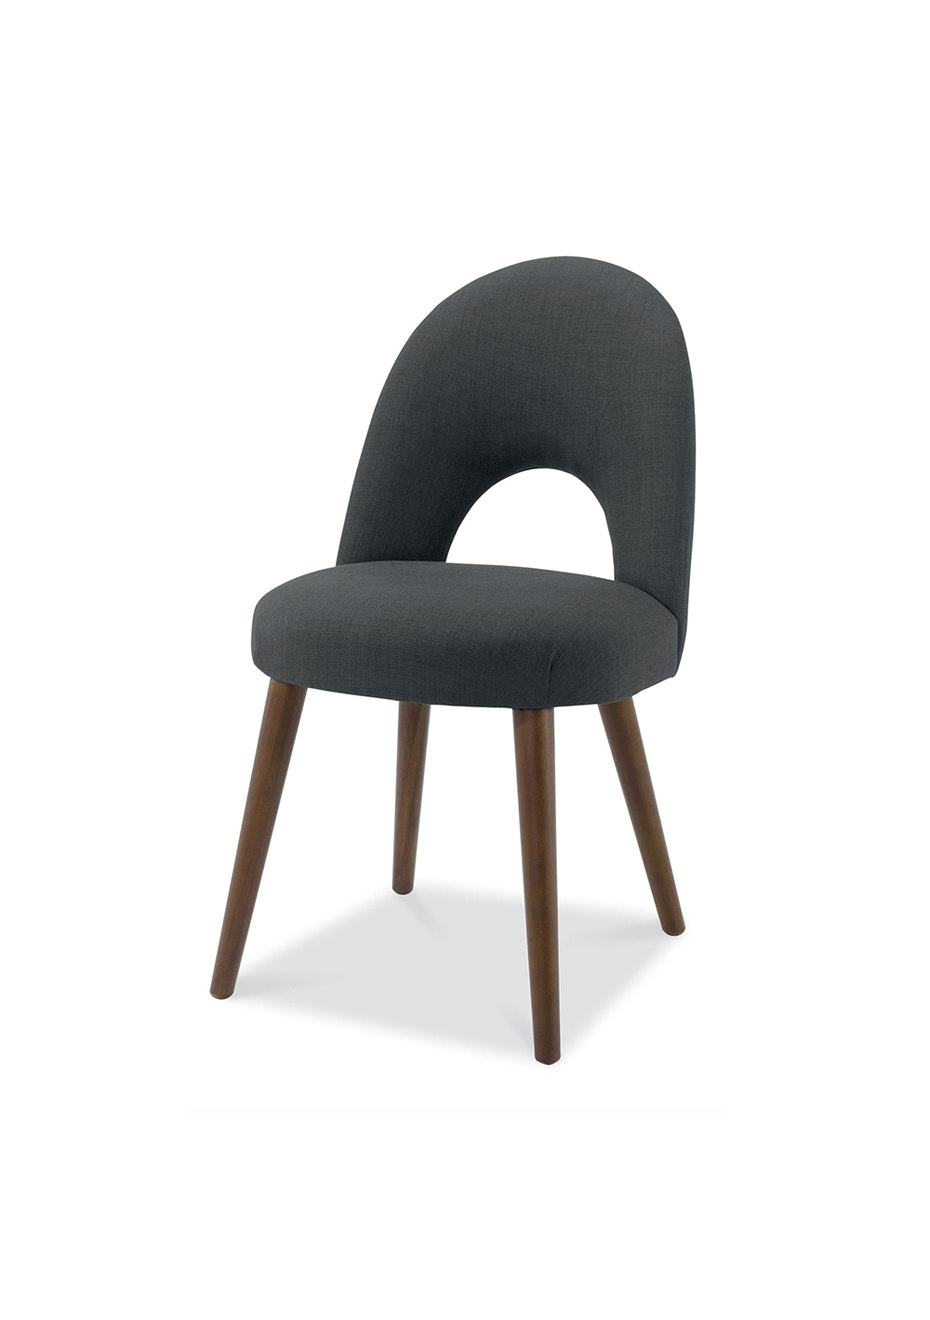 Furniture By Design - Oslo Chair- Walnut and Charcoal